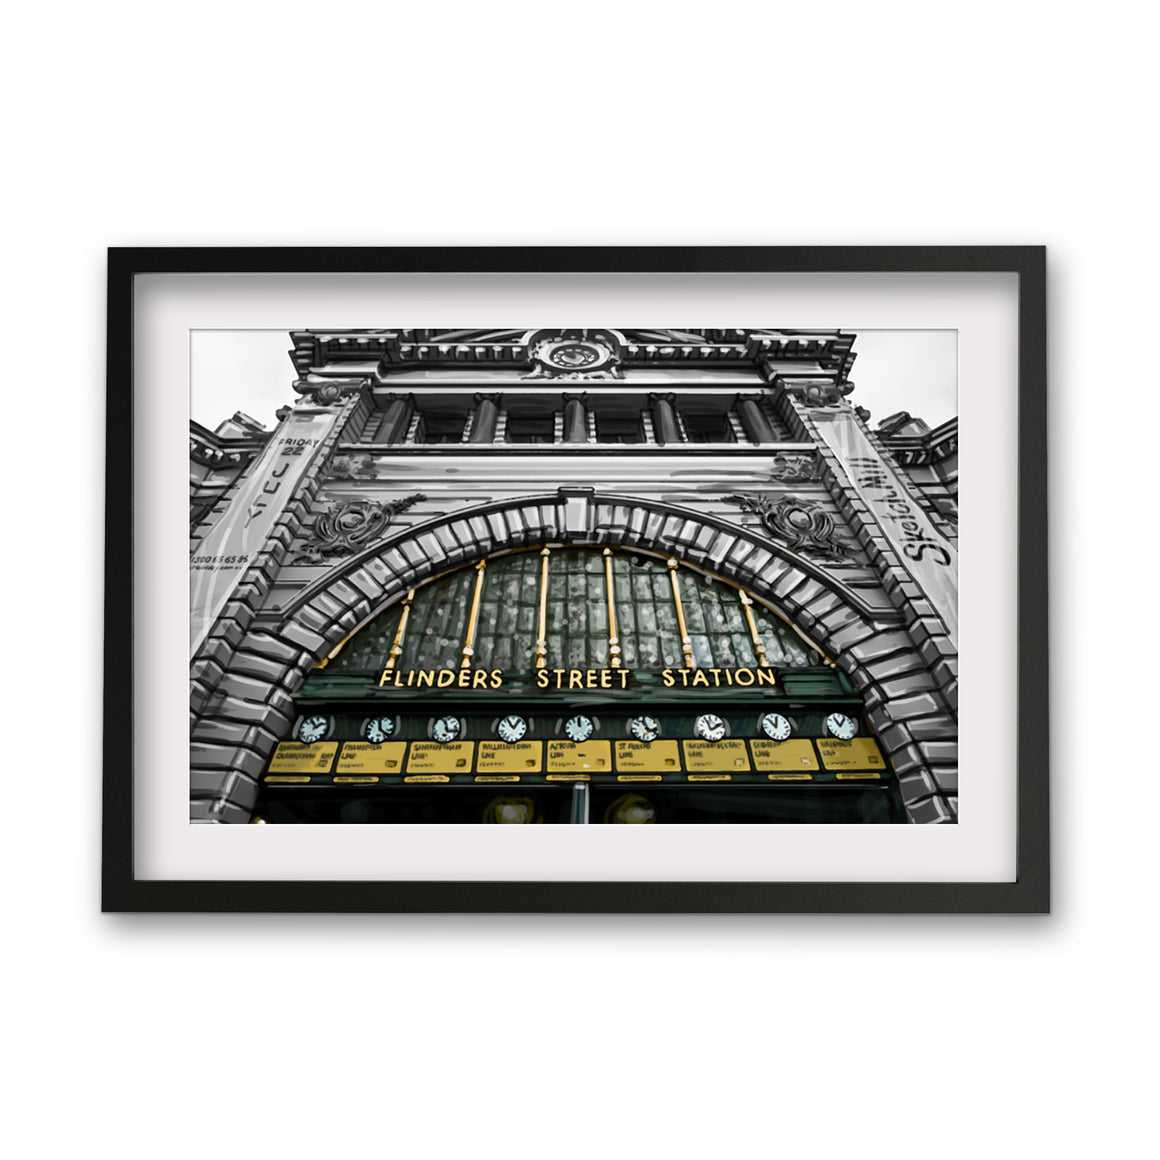 Print (Iconic) - Melbourne Flinders st Station Clocks